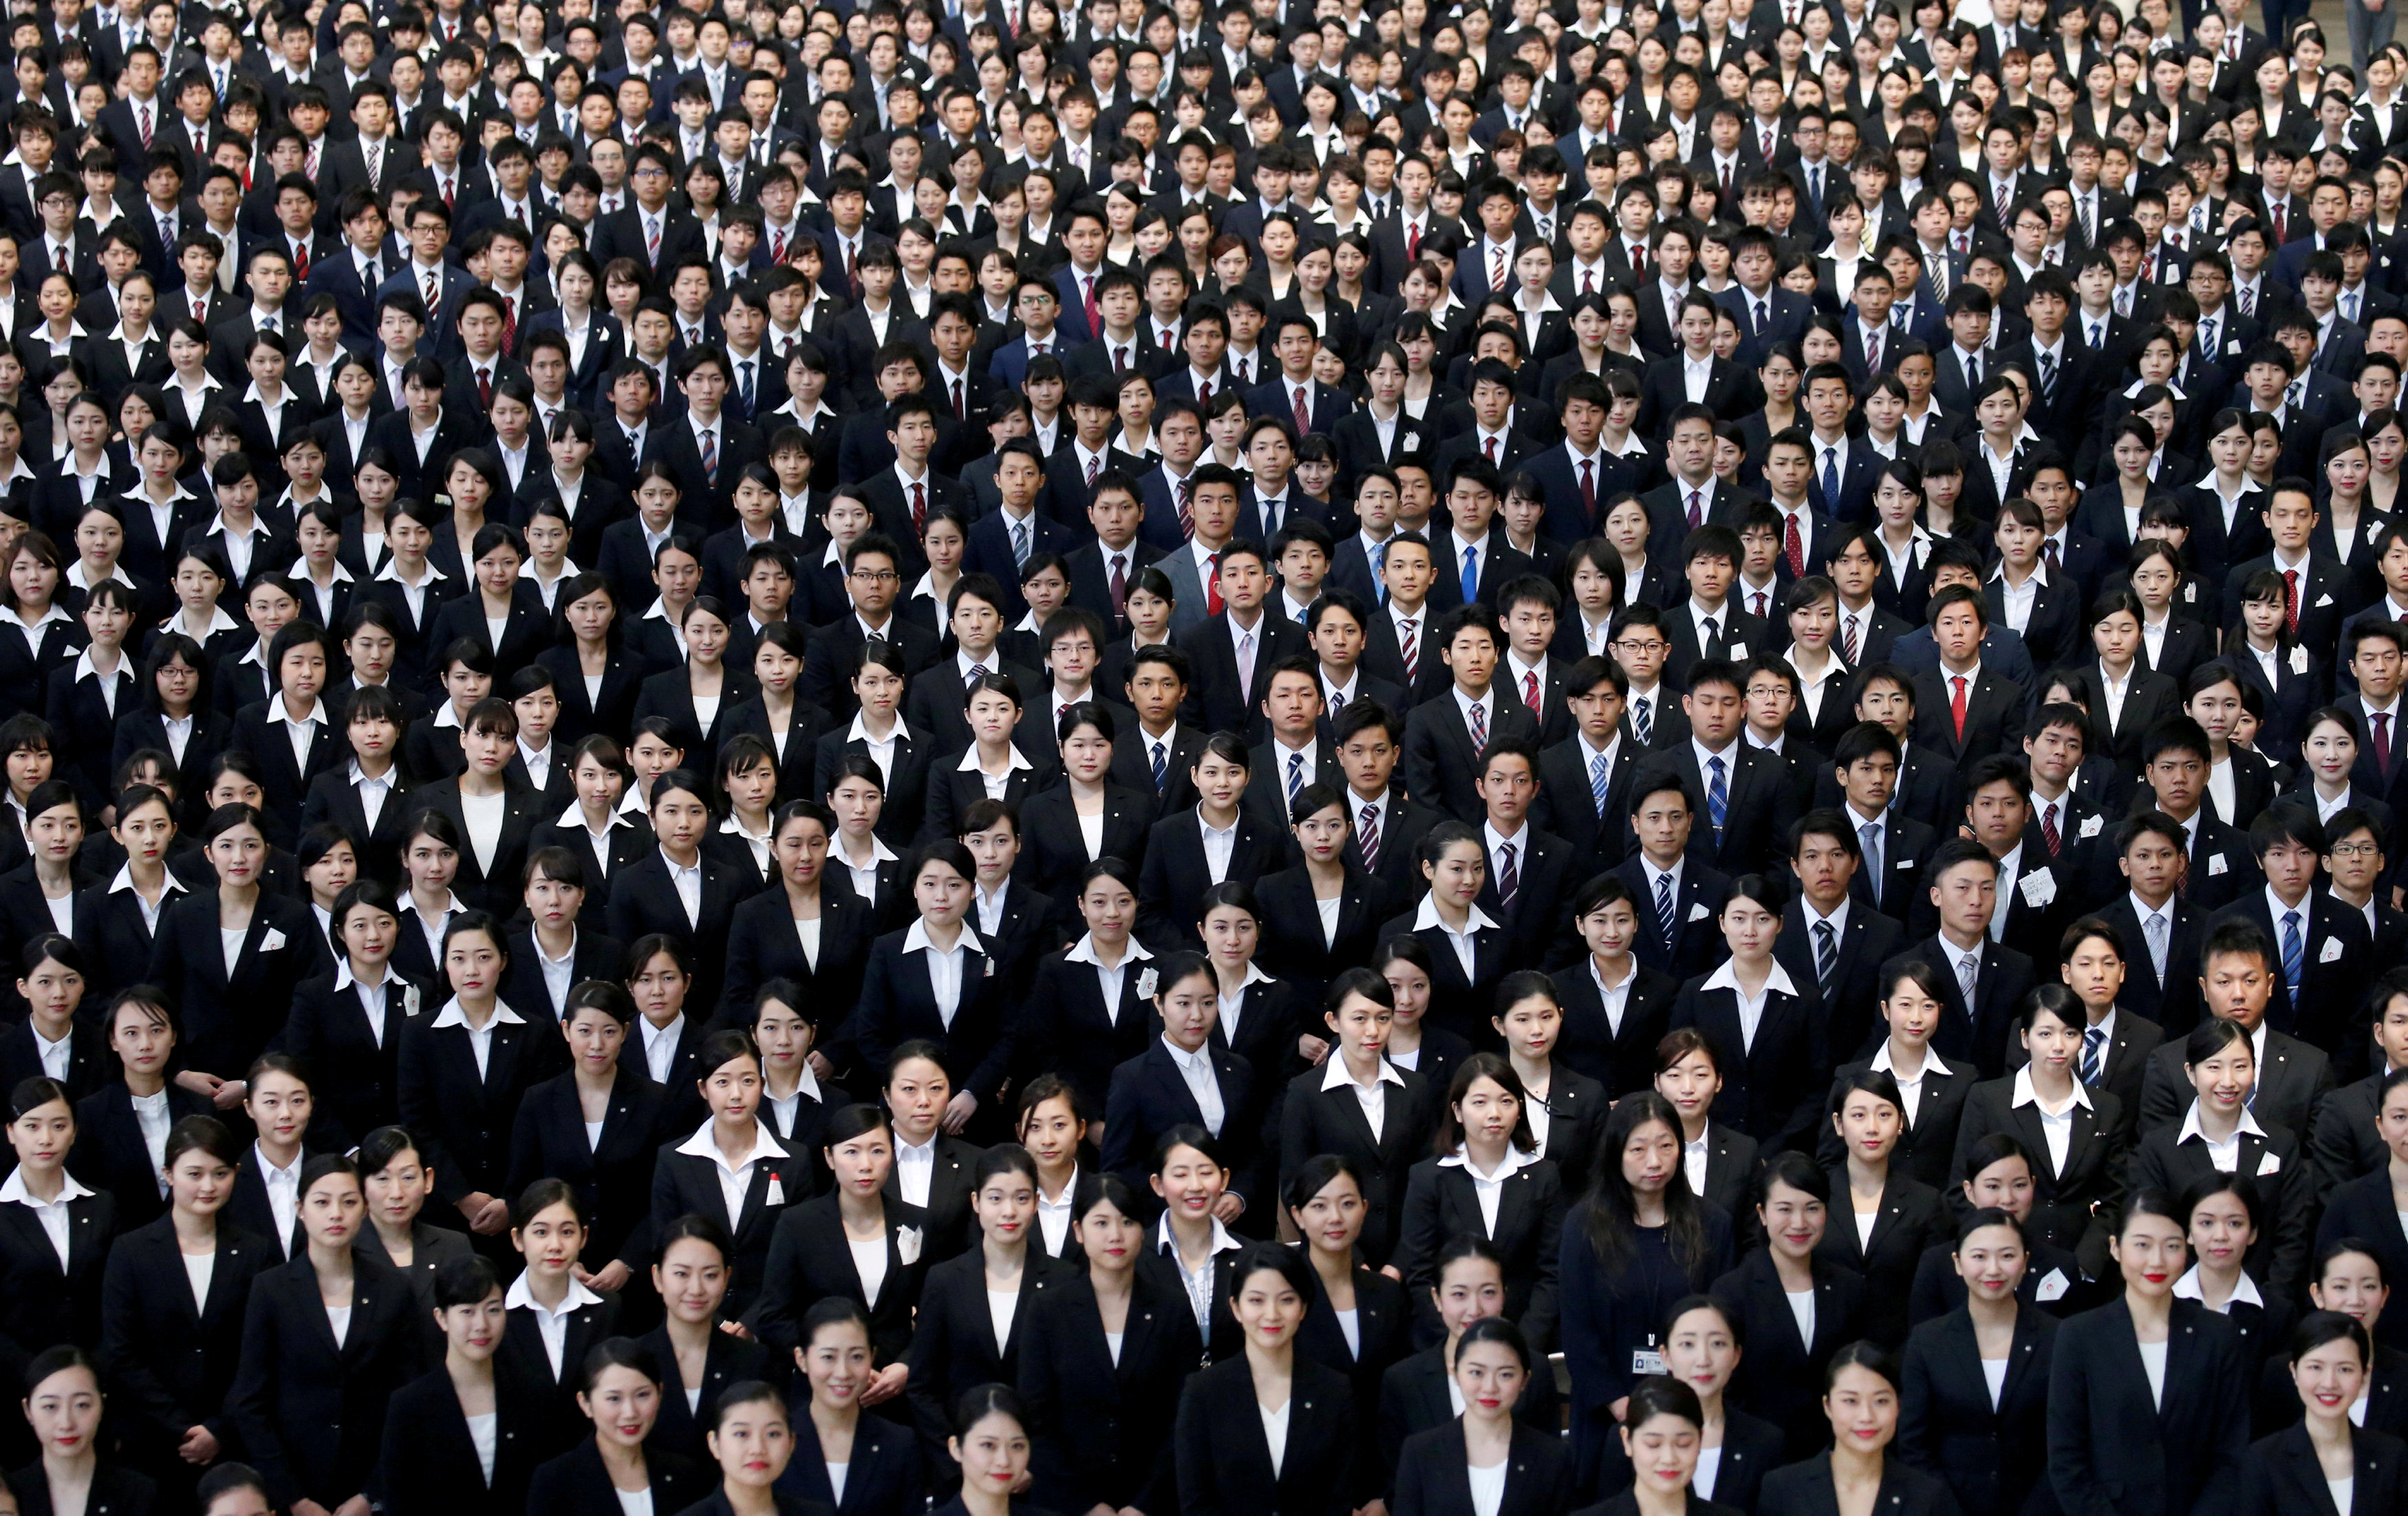 Newly-hired employees of Japan Airlines pose for photos during an initiation ceremony at a hangar of Haneda airport in Tokyo on April 3. | REUTERS